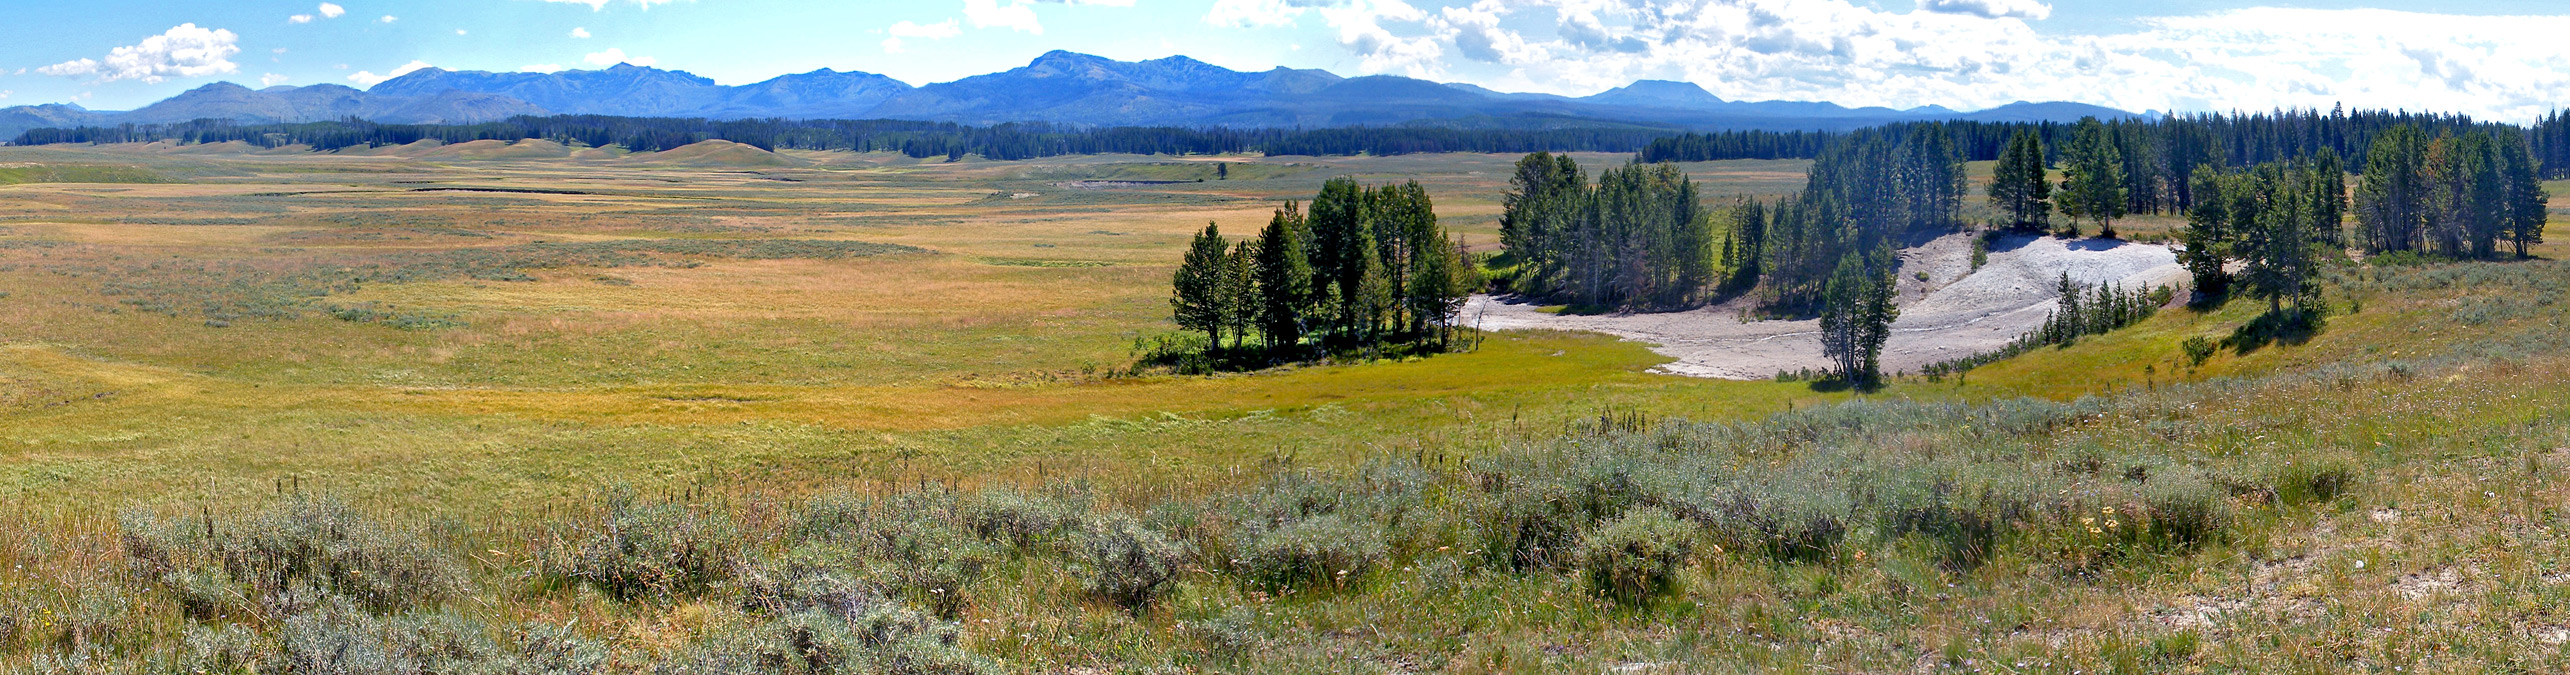 Pelican Valley Pelican Valley Trail Yellowstone National